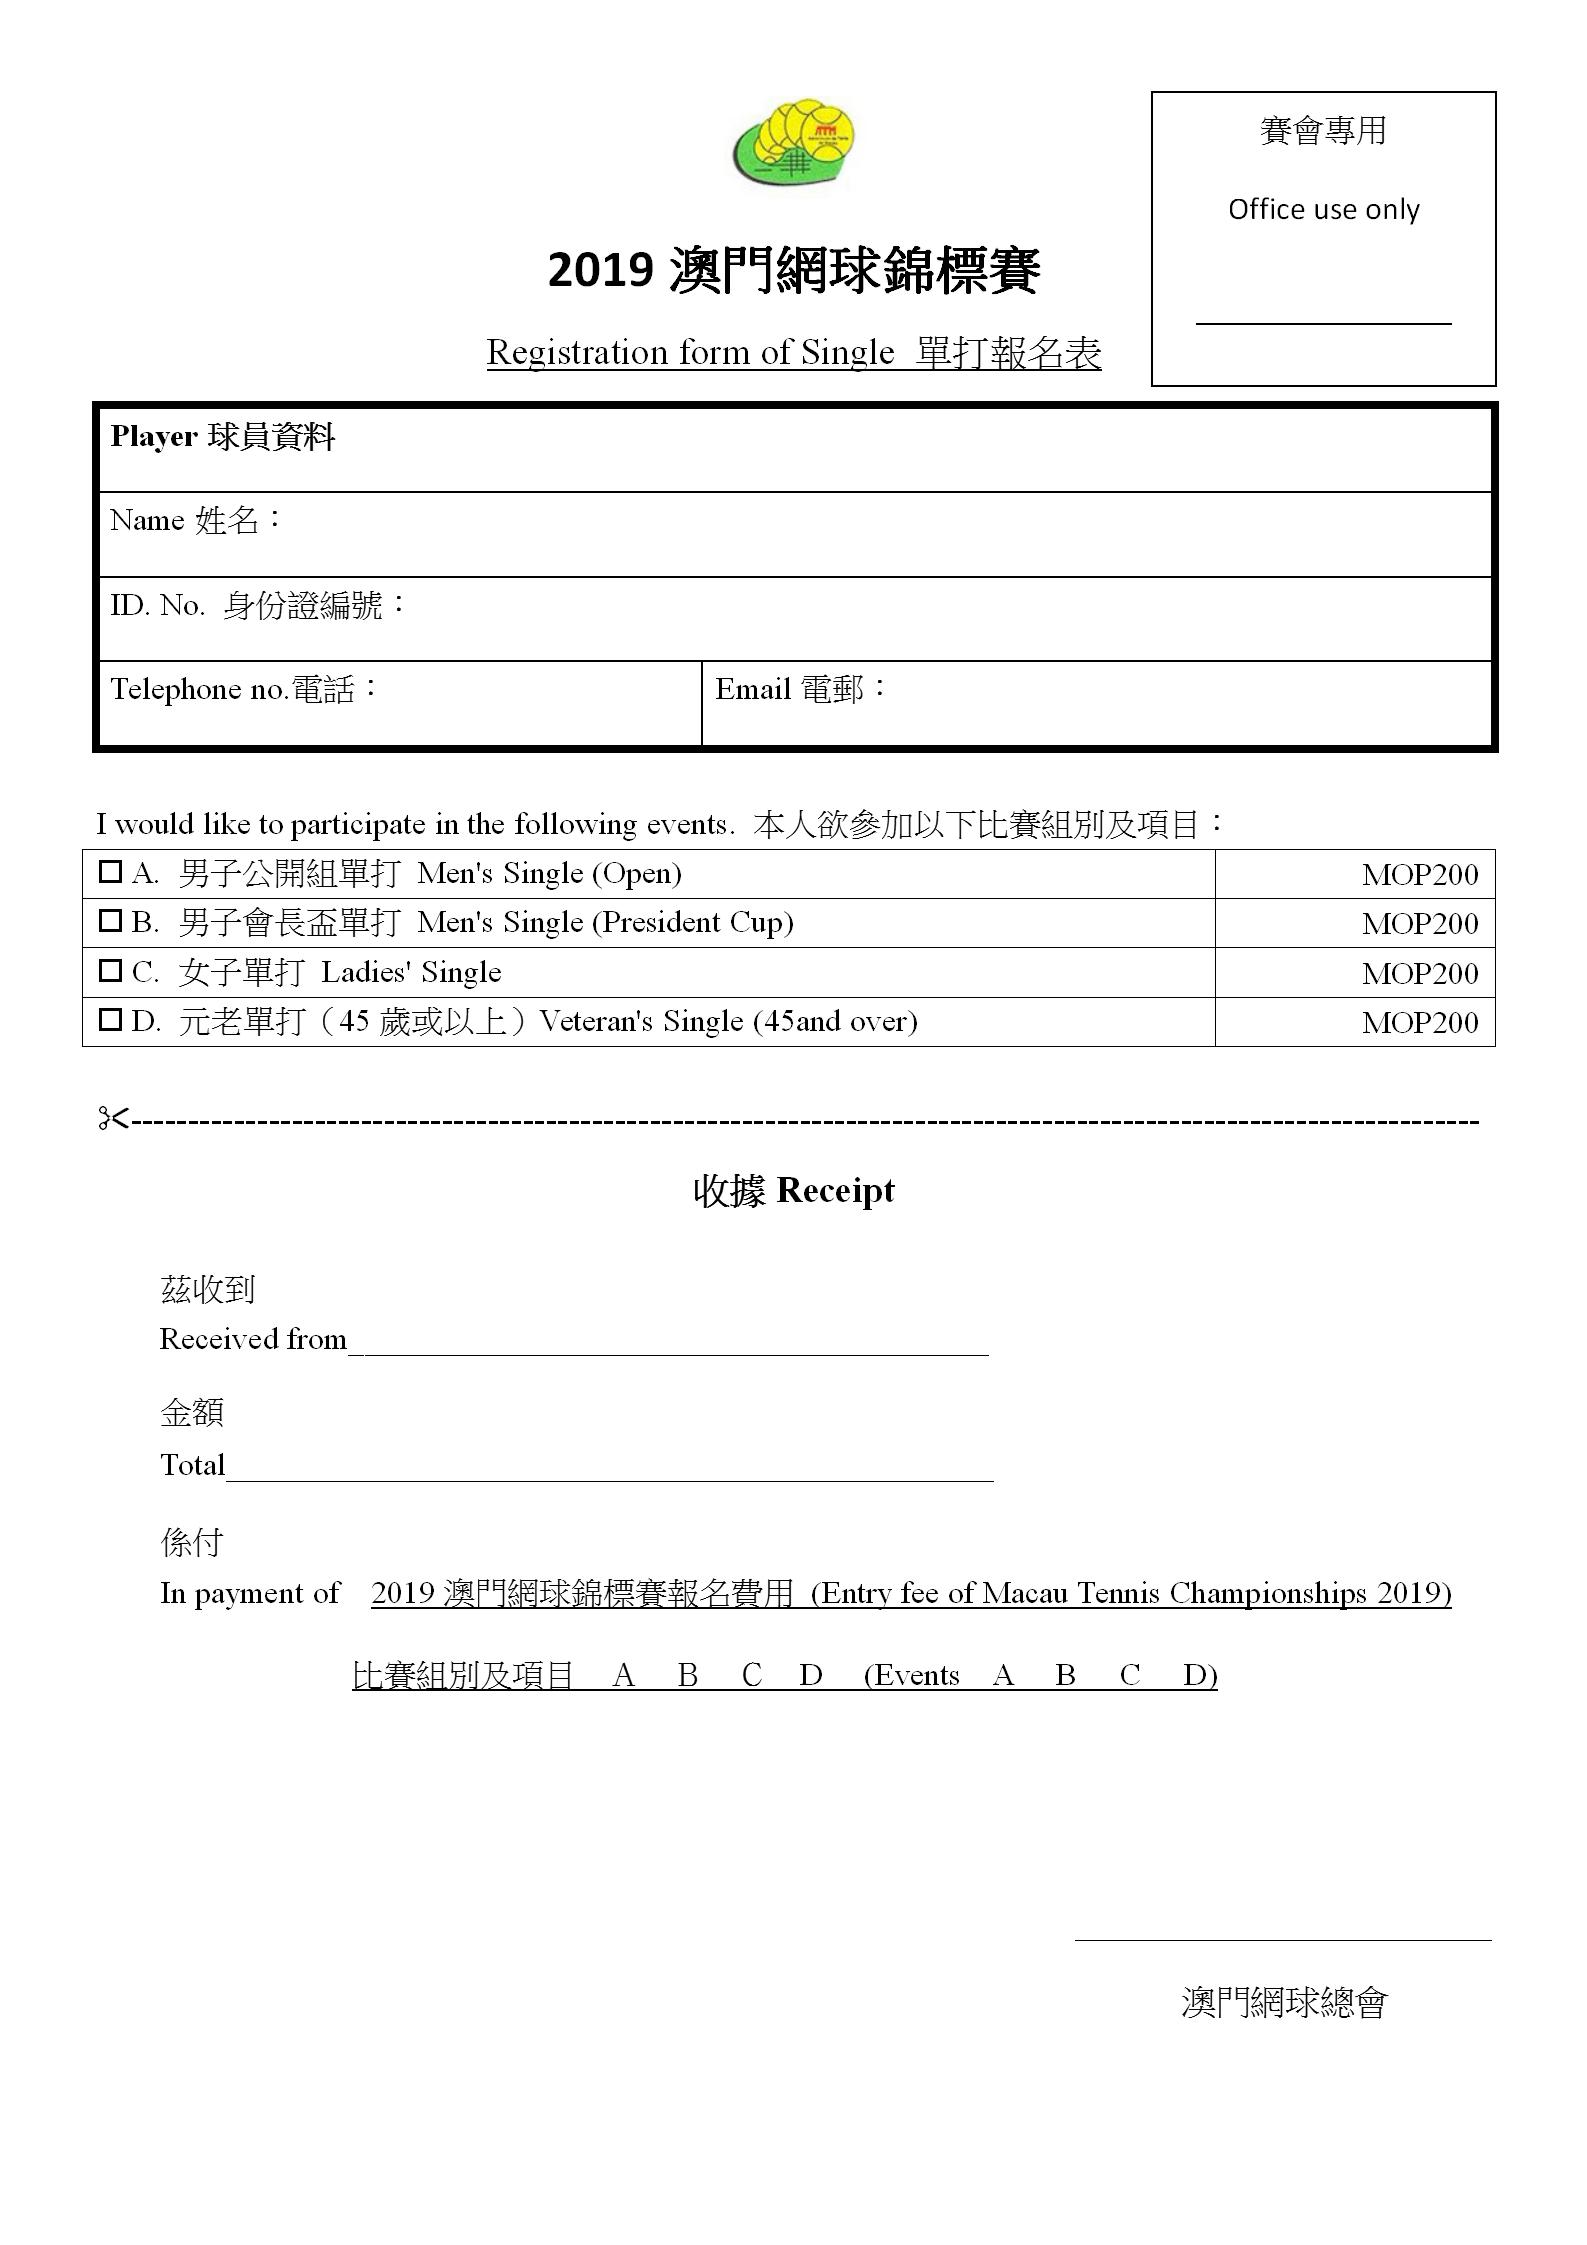 2019 Macau Tennis Championships application Form - 20180503_